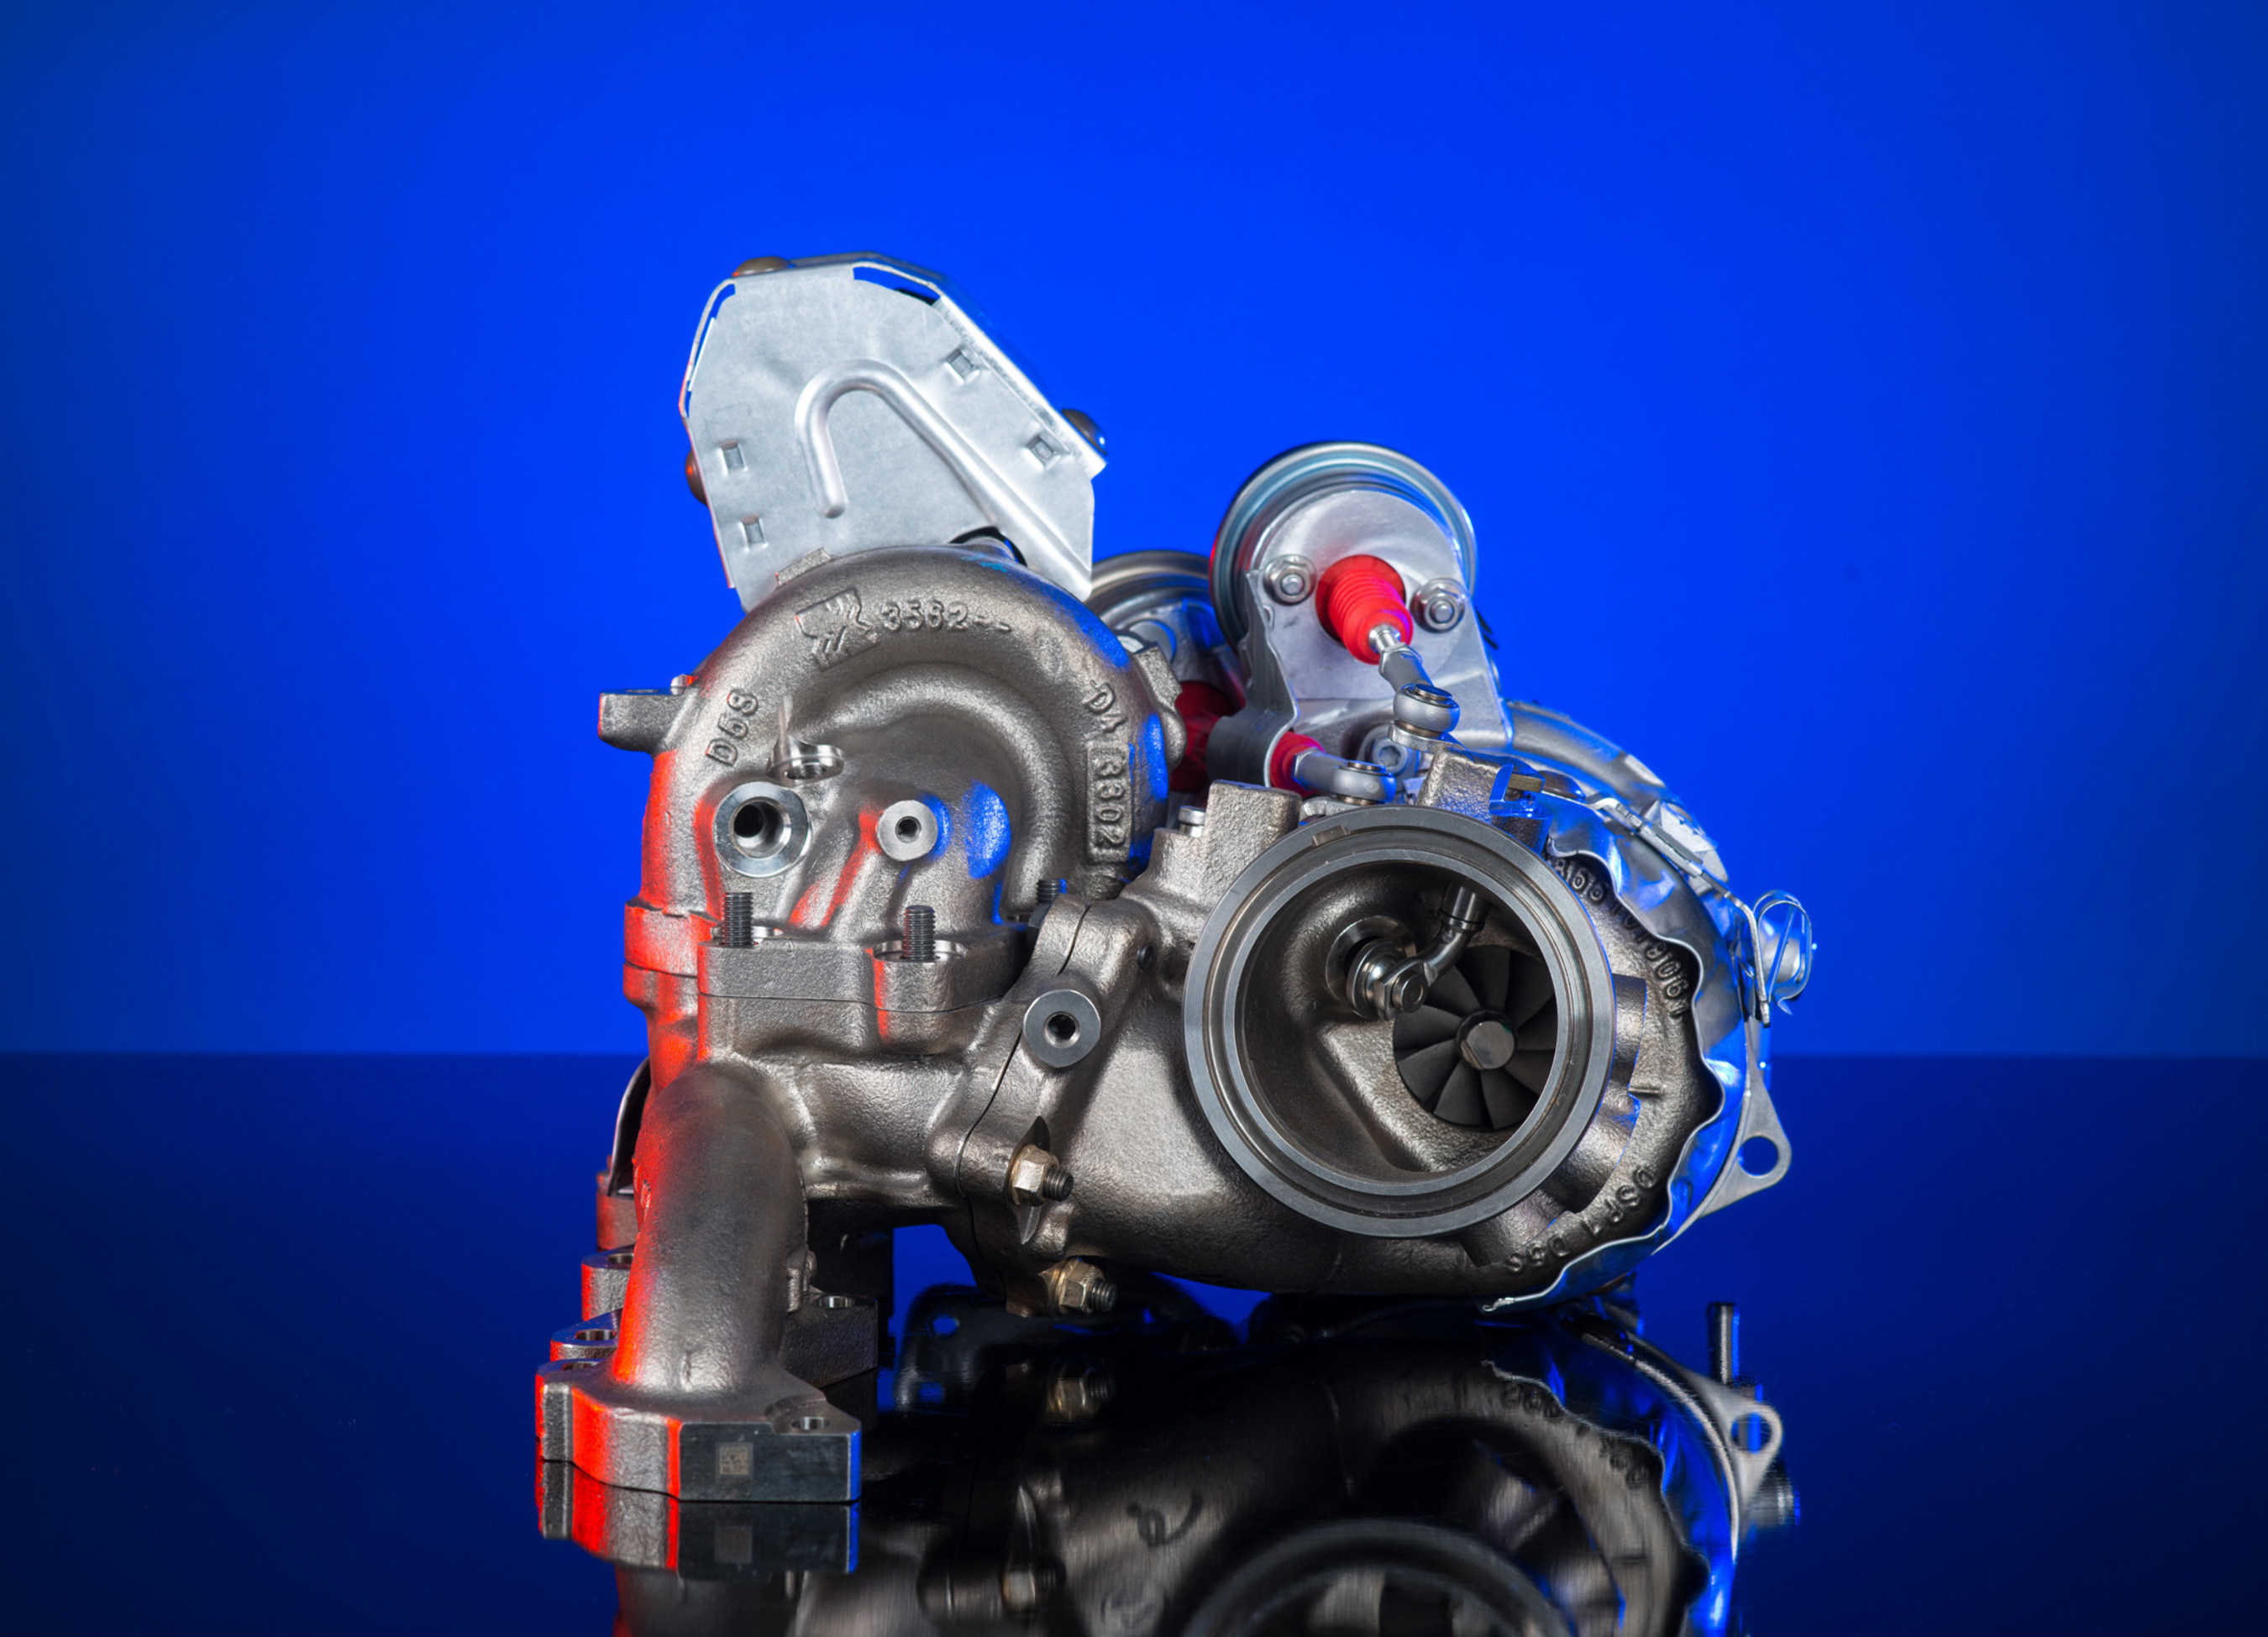 BorgWarner provides its award-winning regulated two-stage (R2S(R)) turbocharging technology for Volkswagen's new high performance diesel engine. Engineered to comply with the Euro 6 emissions standard, the 2.0-liter four-cylinder engine is the most powerful diesel engine in its class.